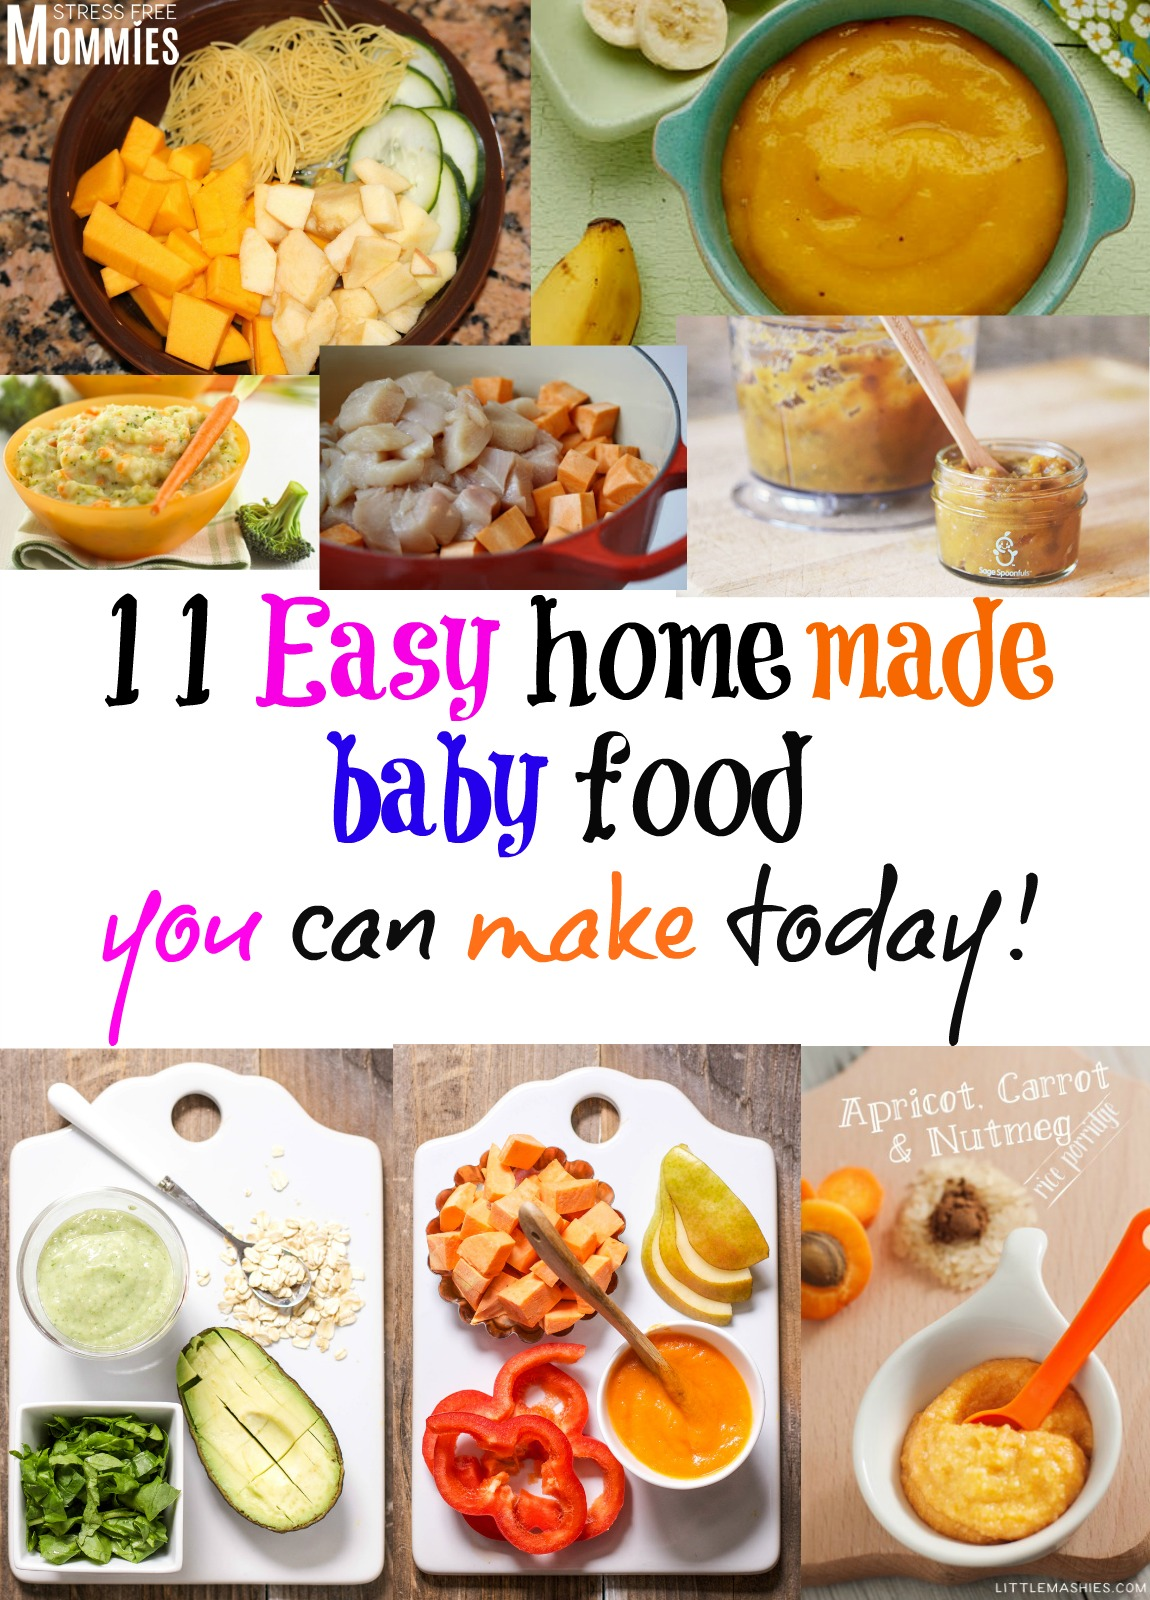 11 easy homemade baby food you can make today alimentacion bebe 11 easy homemade baby food you can make today stress free mommies forumfinder Gallery